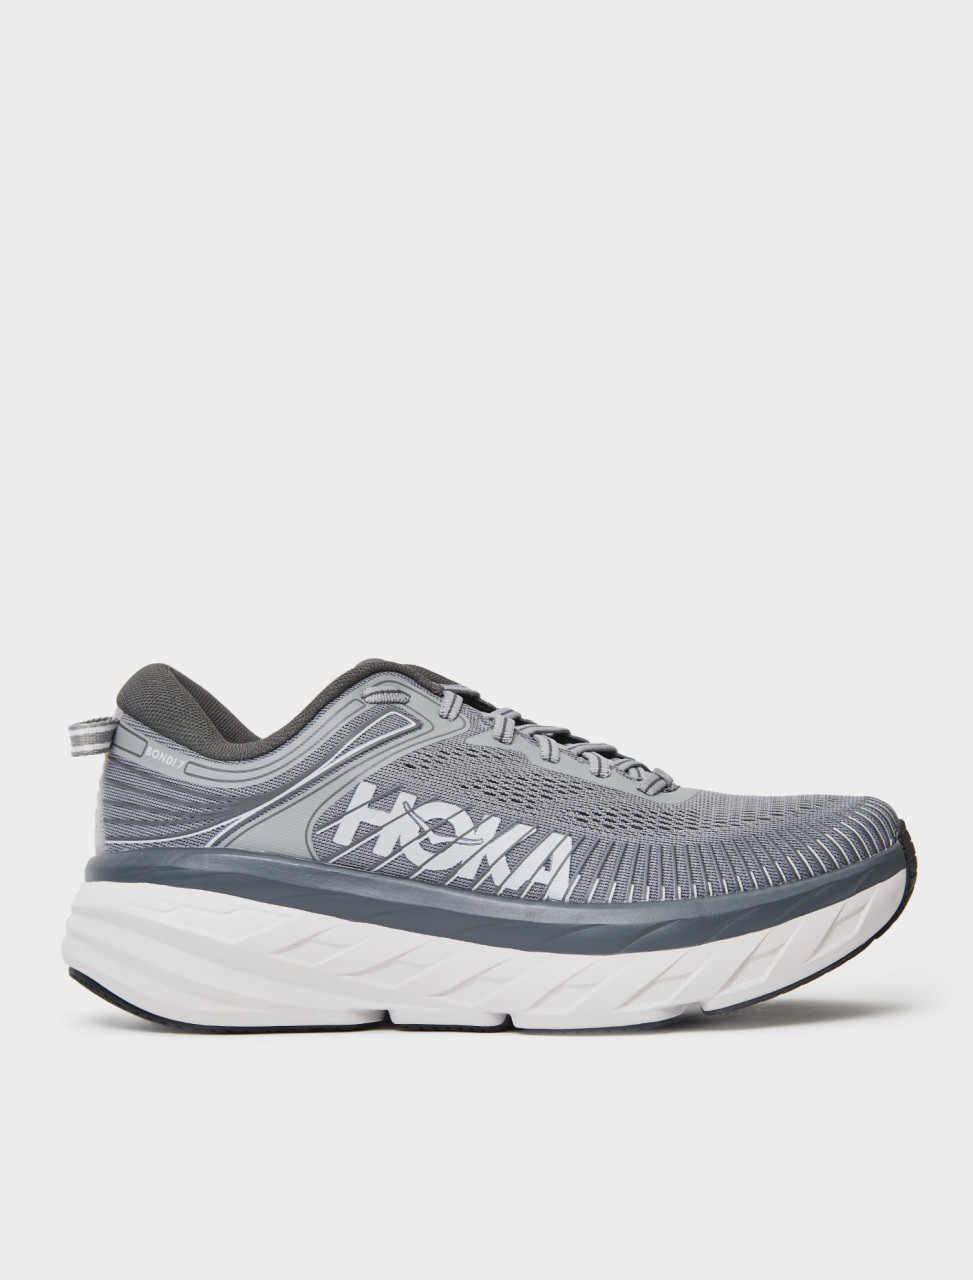 303-1110518-WDDS HOKA ONE ONE BONDI 7 WILD DOVE SIDE